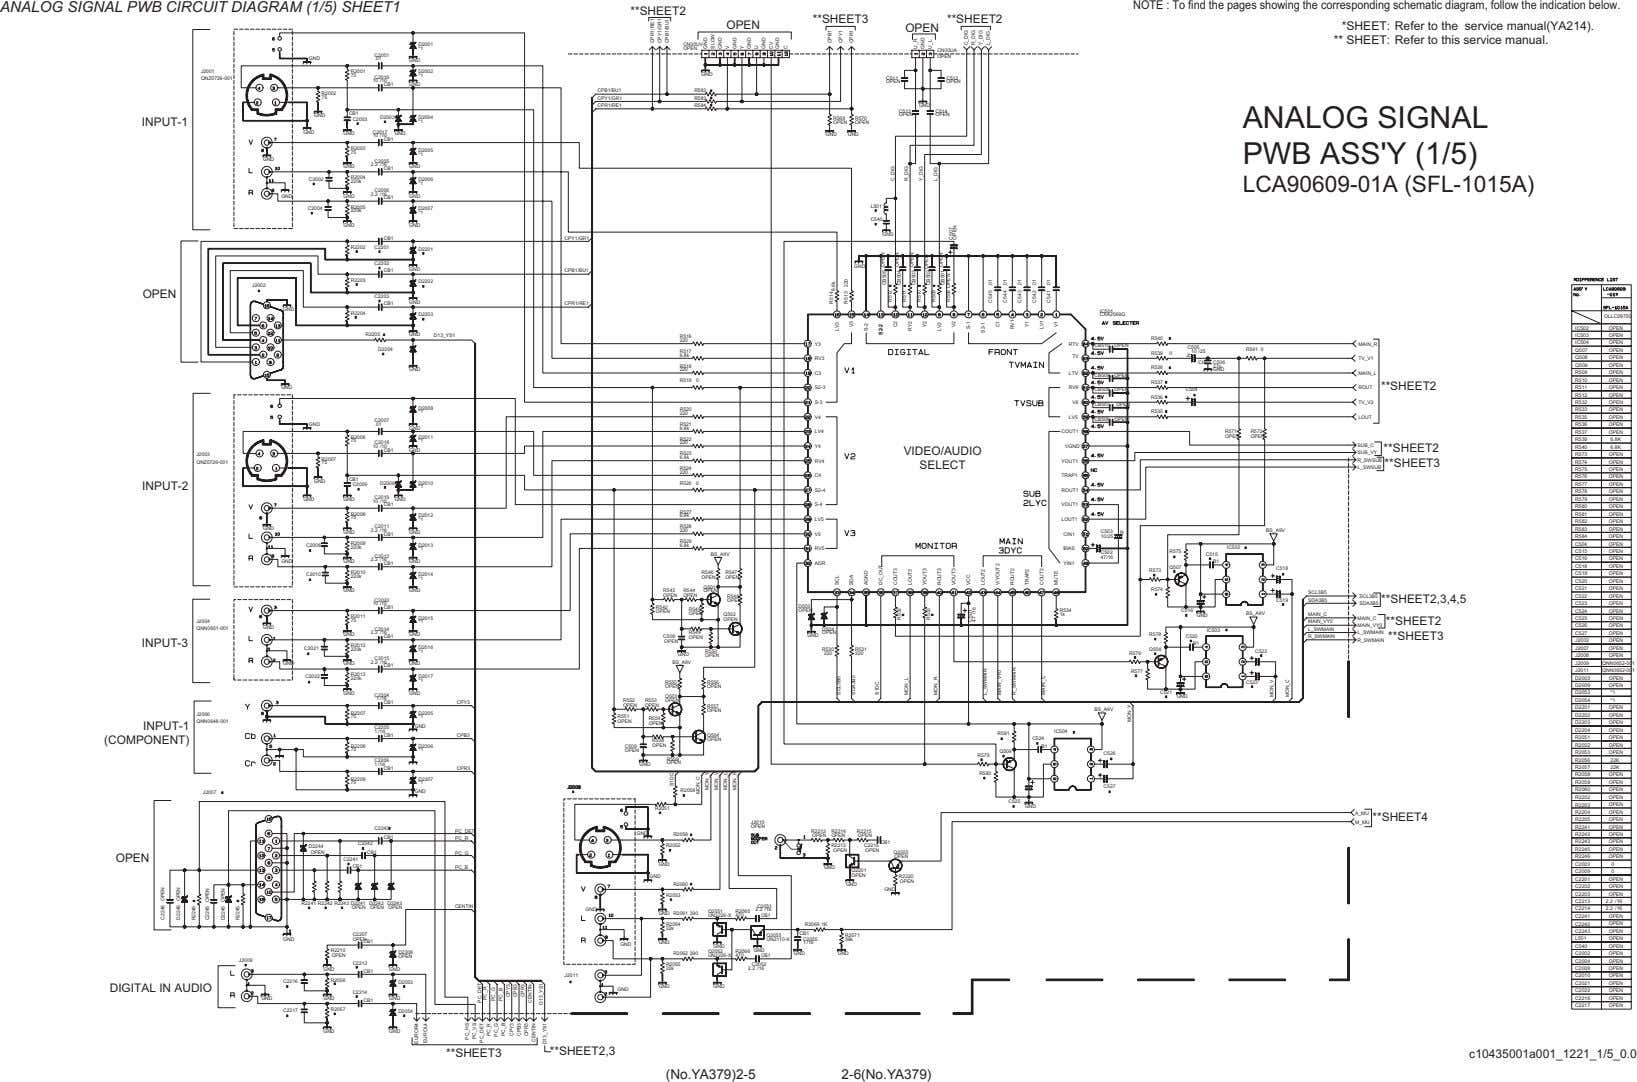 ANALOG SIGNAL PWB CIRCUIT DIAGRAM (1/5) SHEET1 **SHEET2 **SHEET3 **SHEET2 OPEN OPEN NOTE : To find